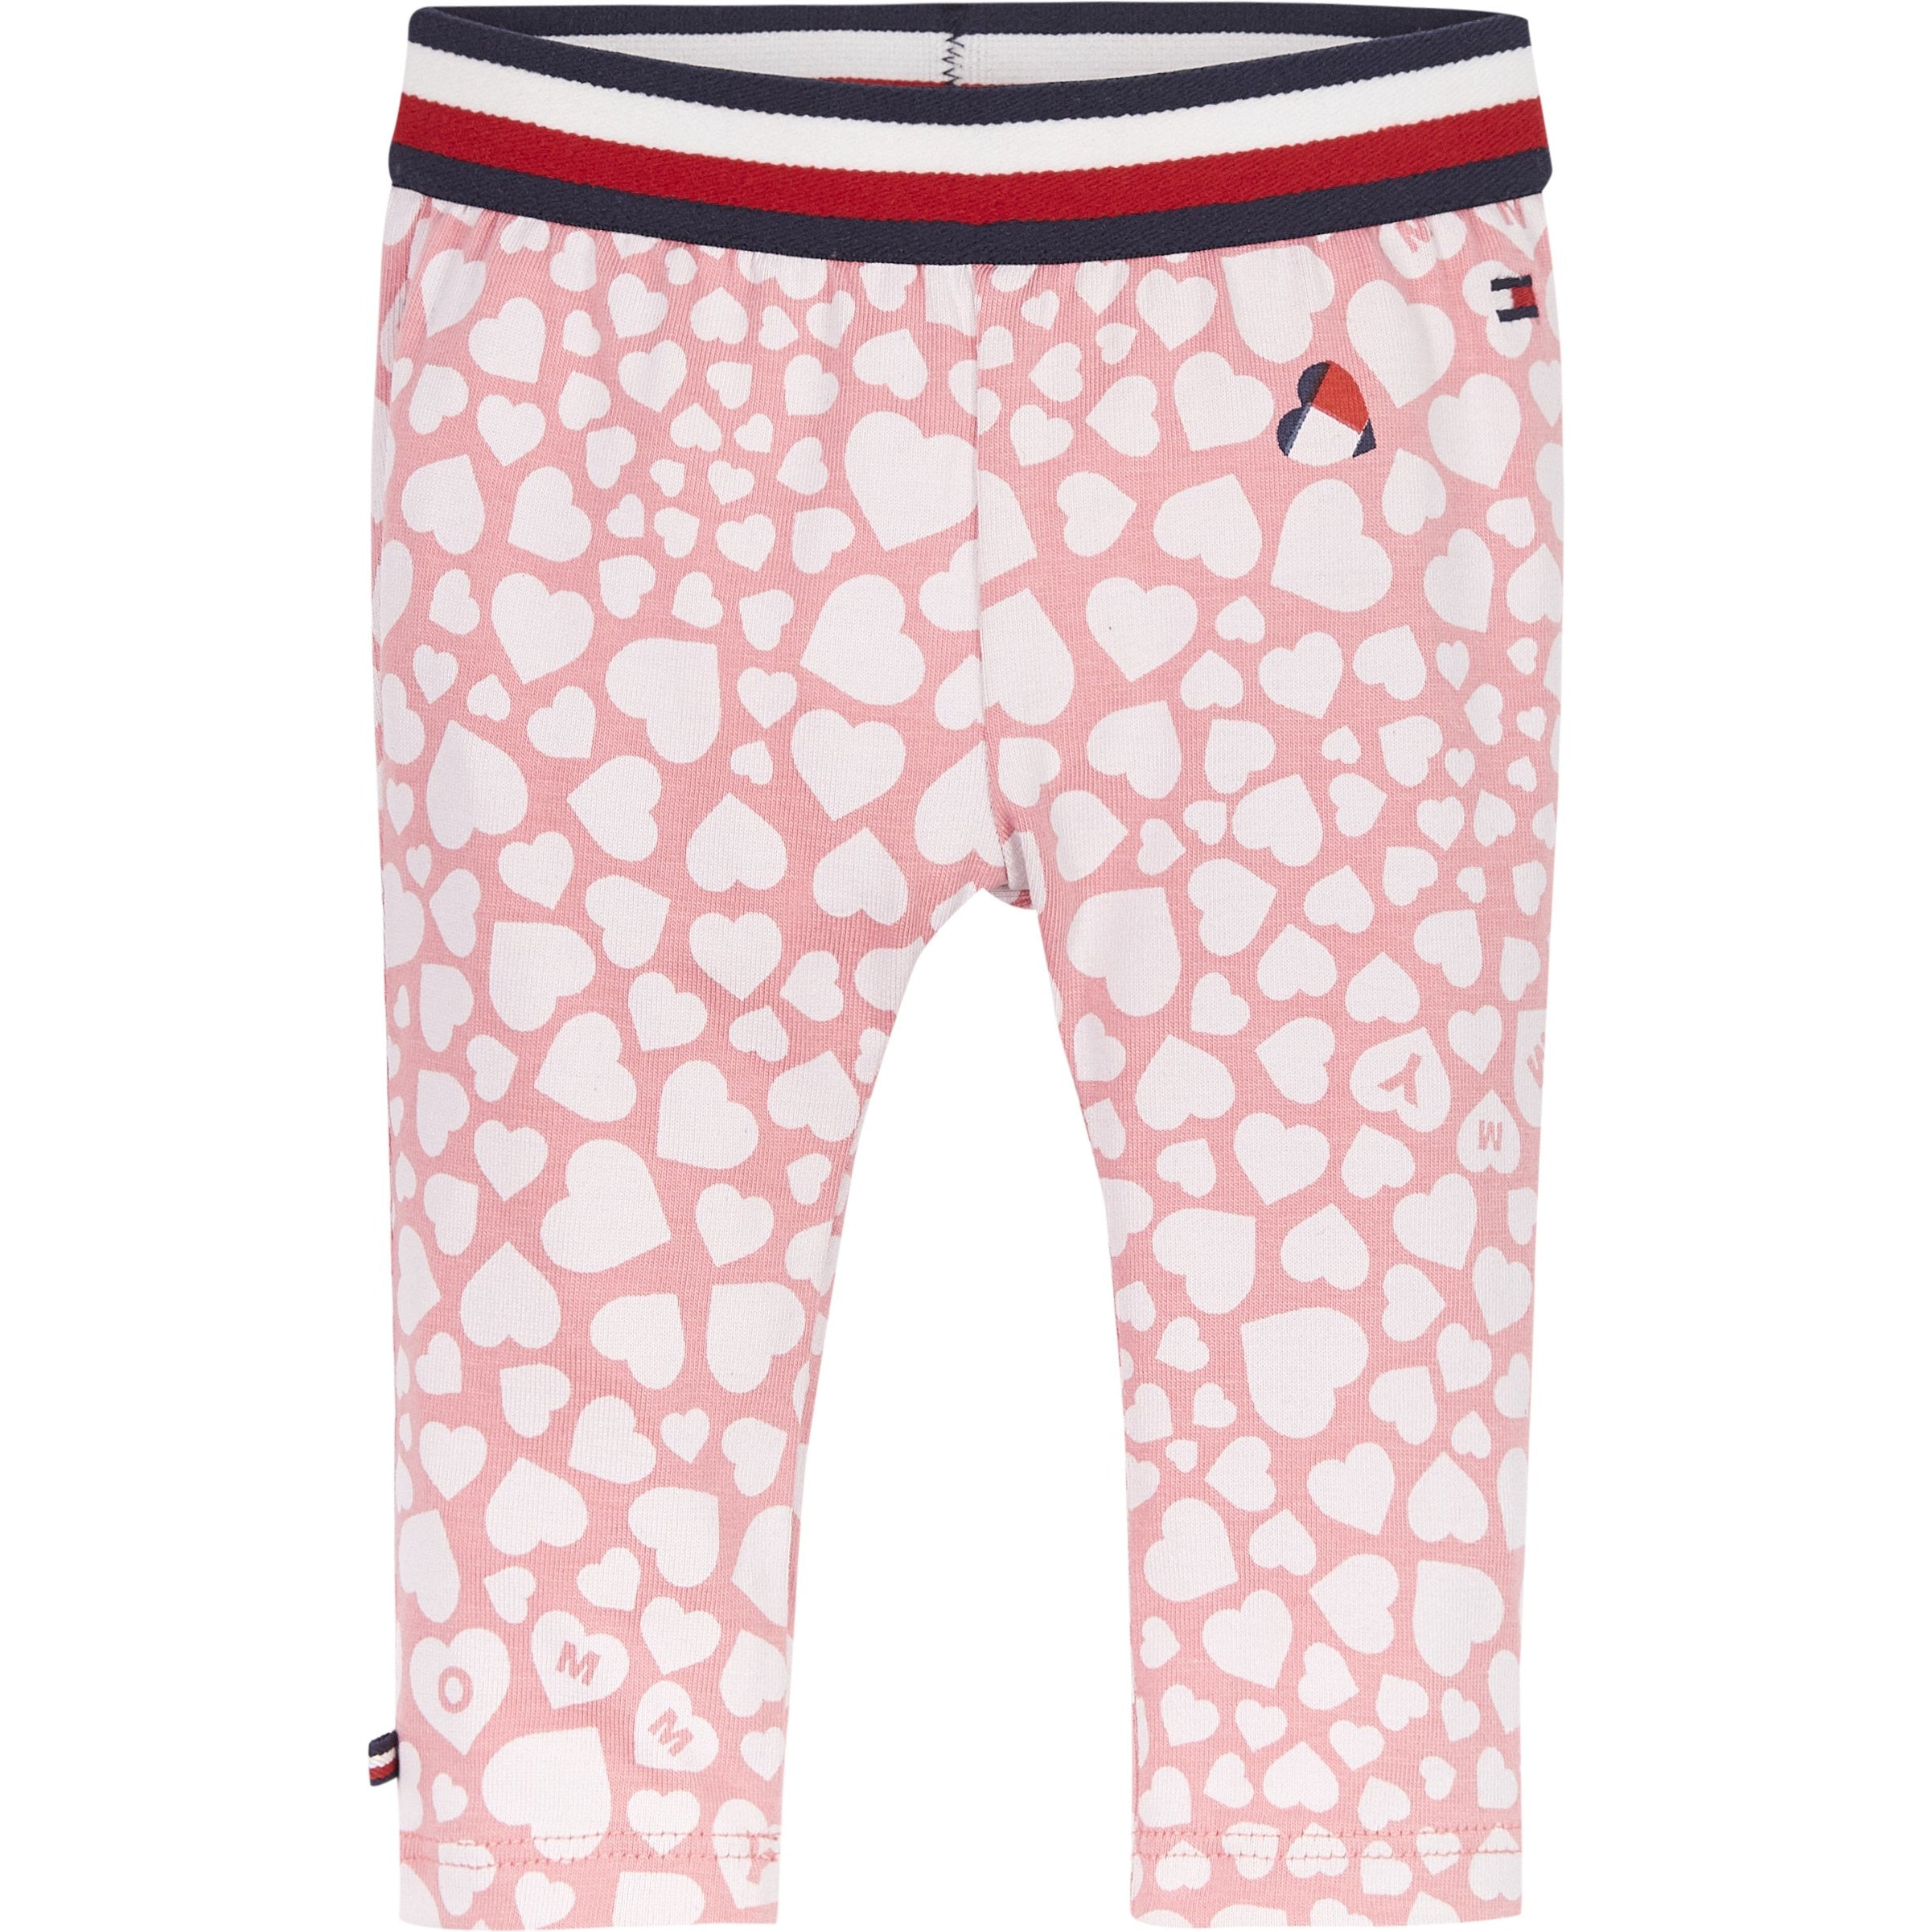 Tommy Hilfiger - Baby girl printed leggings rosey pink heart - 74